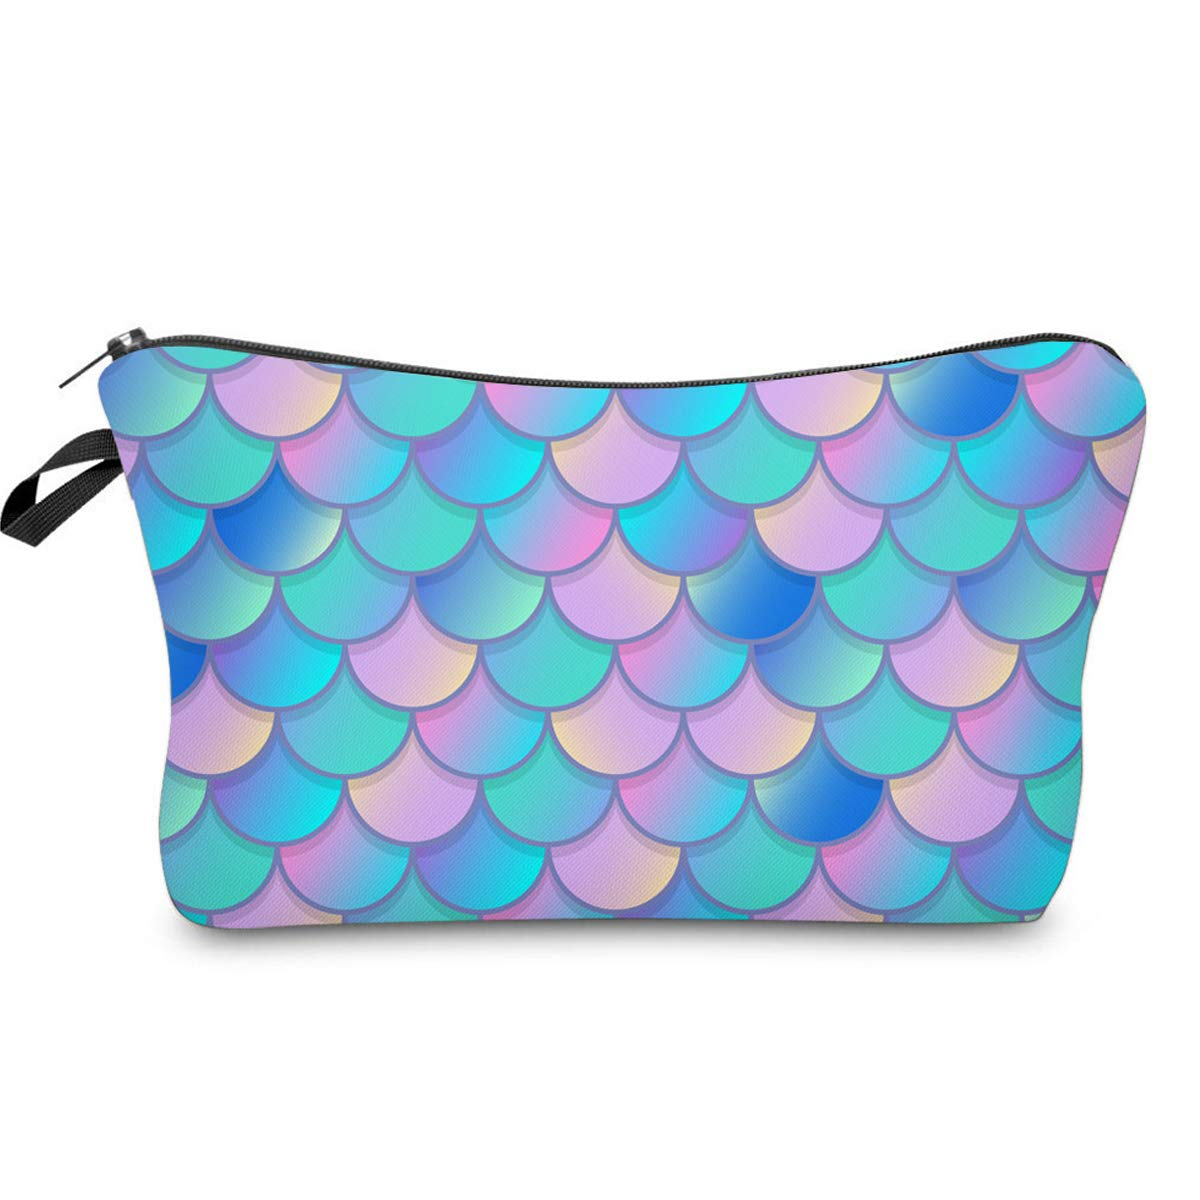 Mermaid Makeup bag Double-sided Printied Waterproof Travel Cosmetic Bag Zipper Pouch Small Toiletry Organizer, Adorable Roomy Mermaid Pencil Case for Girls Gifts Bag